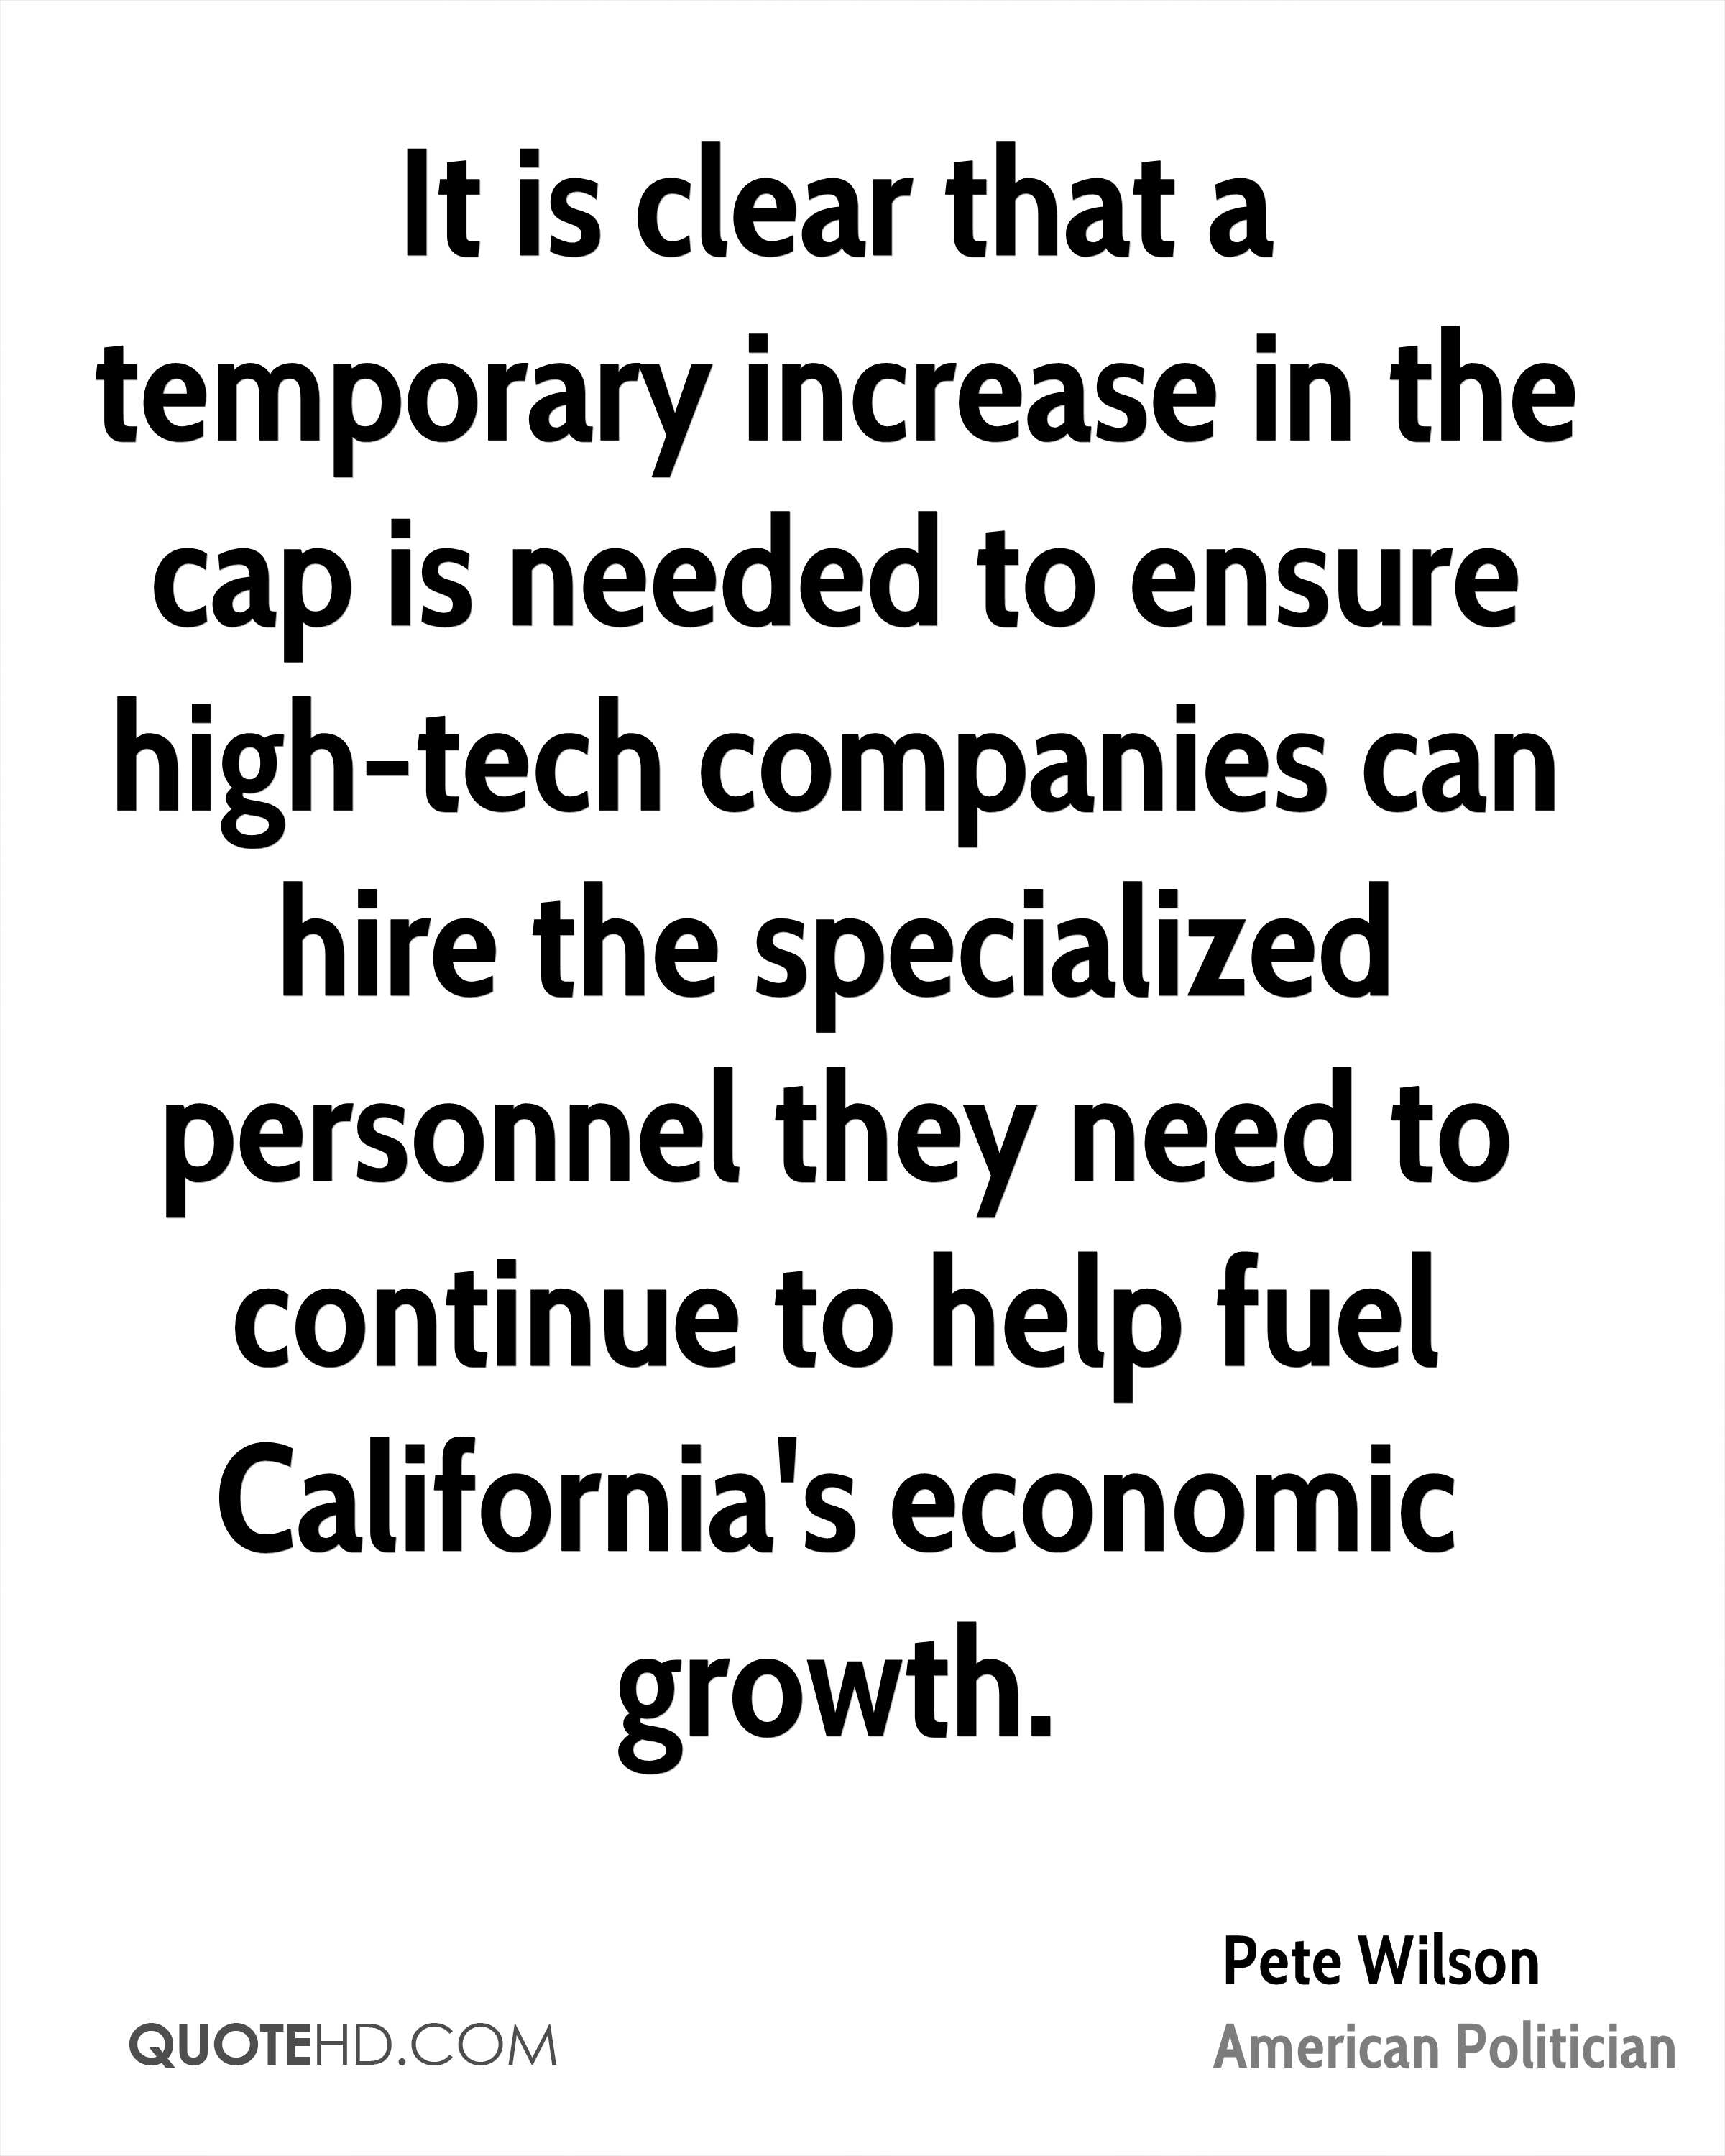 It is clear that a temporary increase in the cap is needed to ensure high-tech companies can hire the specialized personnel they need to continue to help fuel California's economic growth.